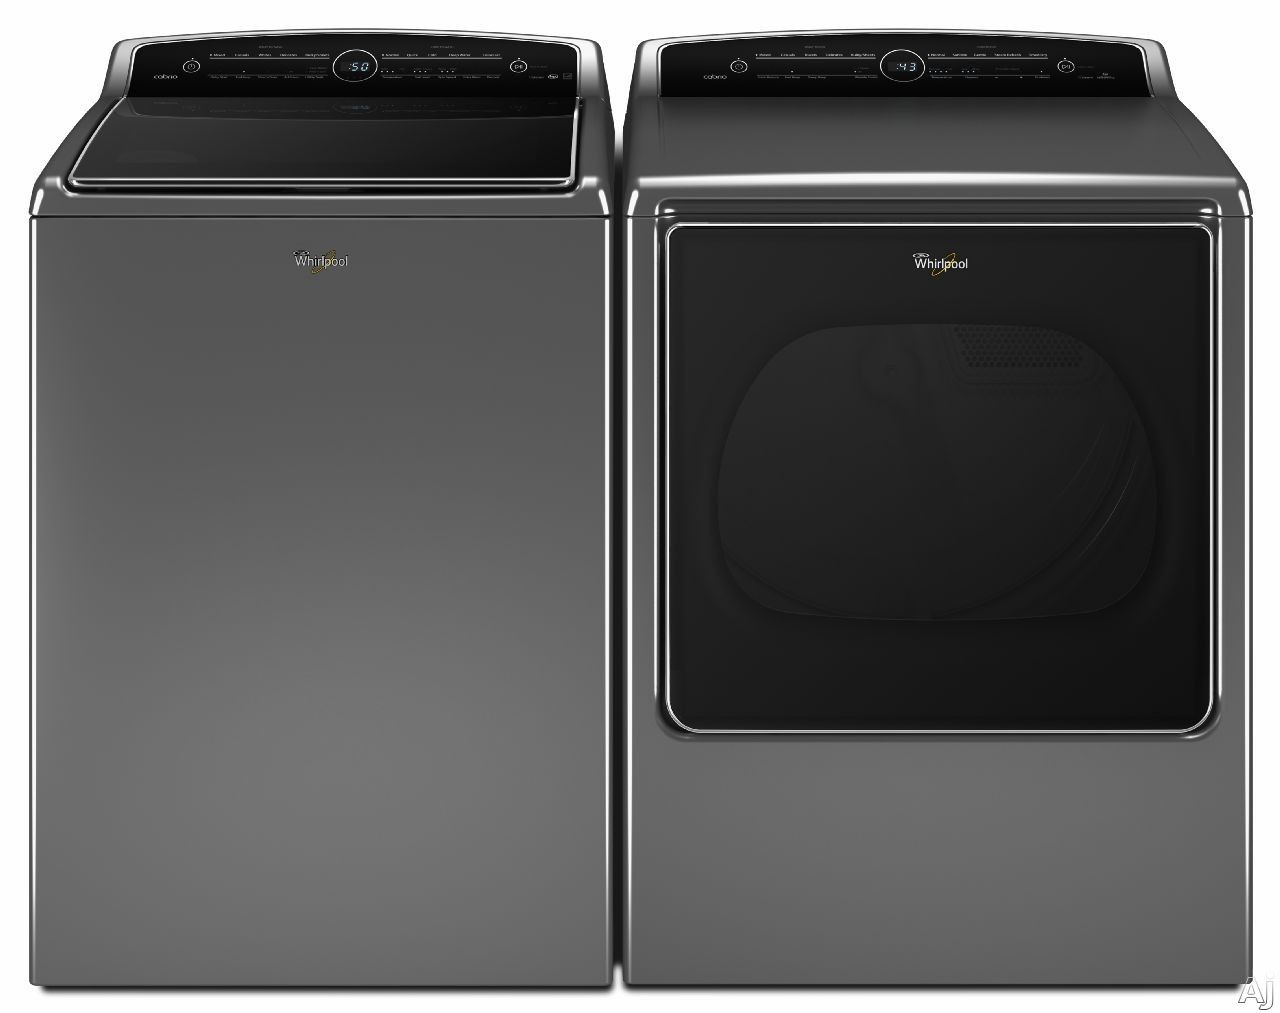 How Do High Efficiency Washers Work Whirlpool Cabrio Combo Pair Whirlpool High Efficiency Top Load